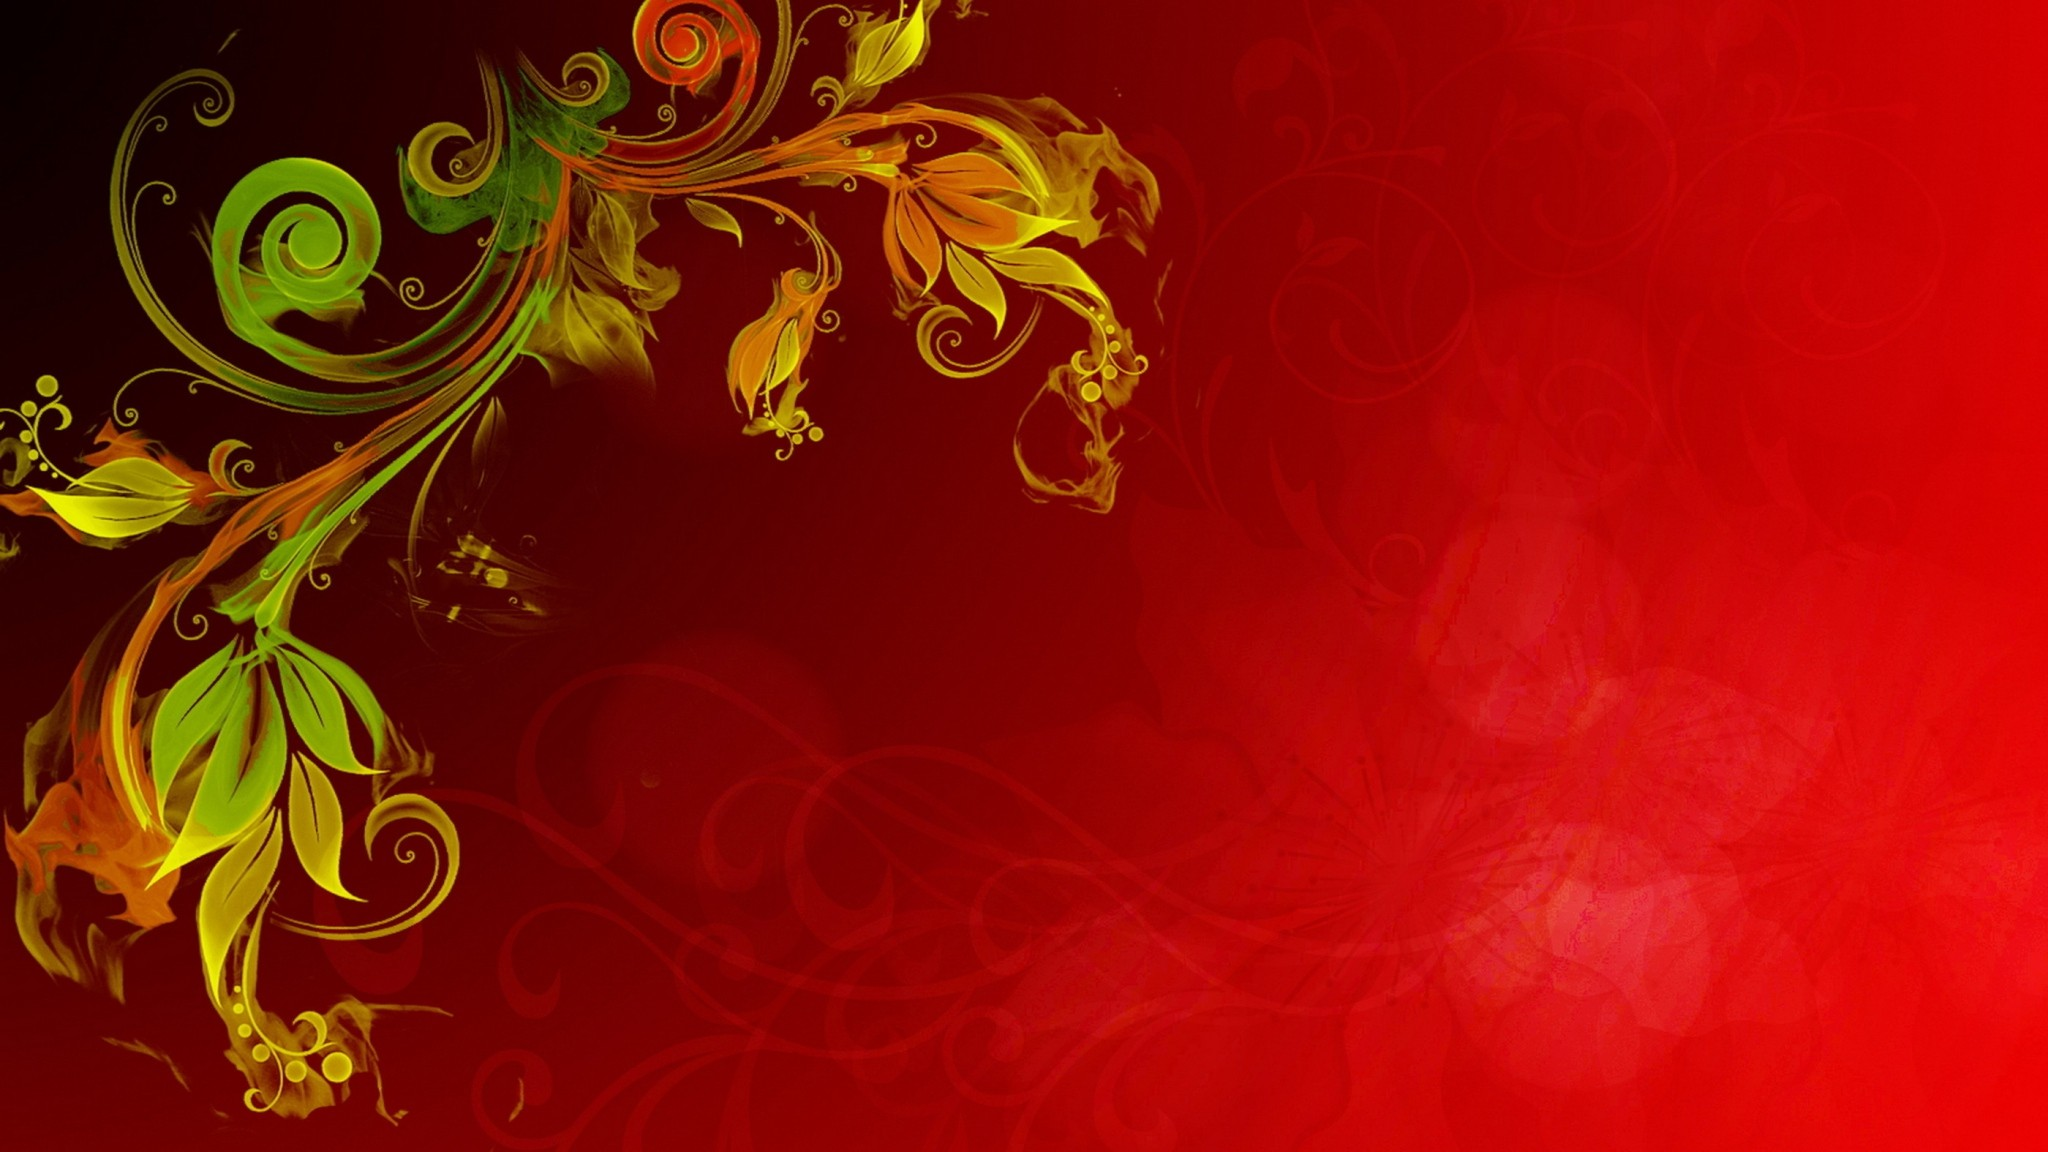 2048x1152 wallpaper free fire: Fire Background HD ·① Download Free Stunning HD Wallpapers